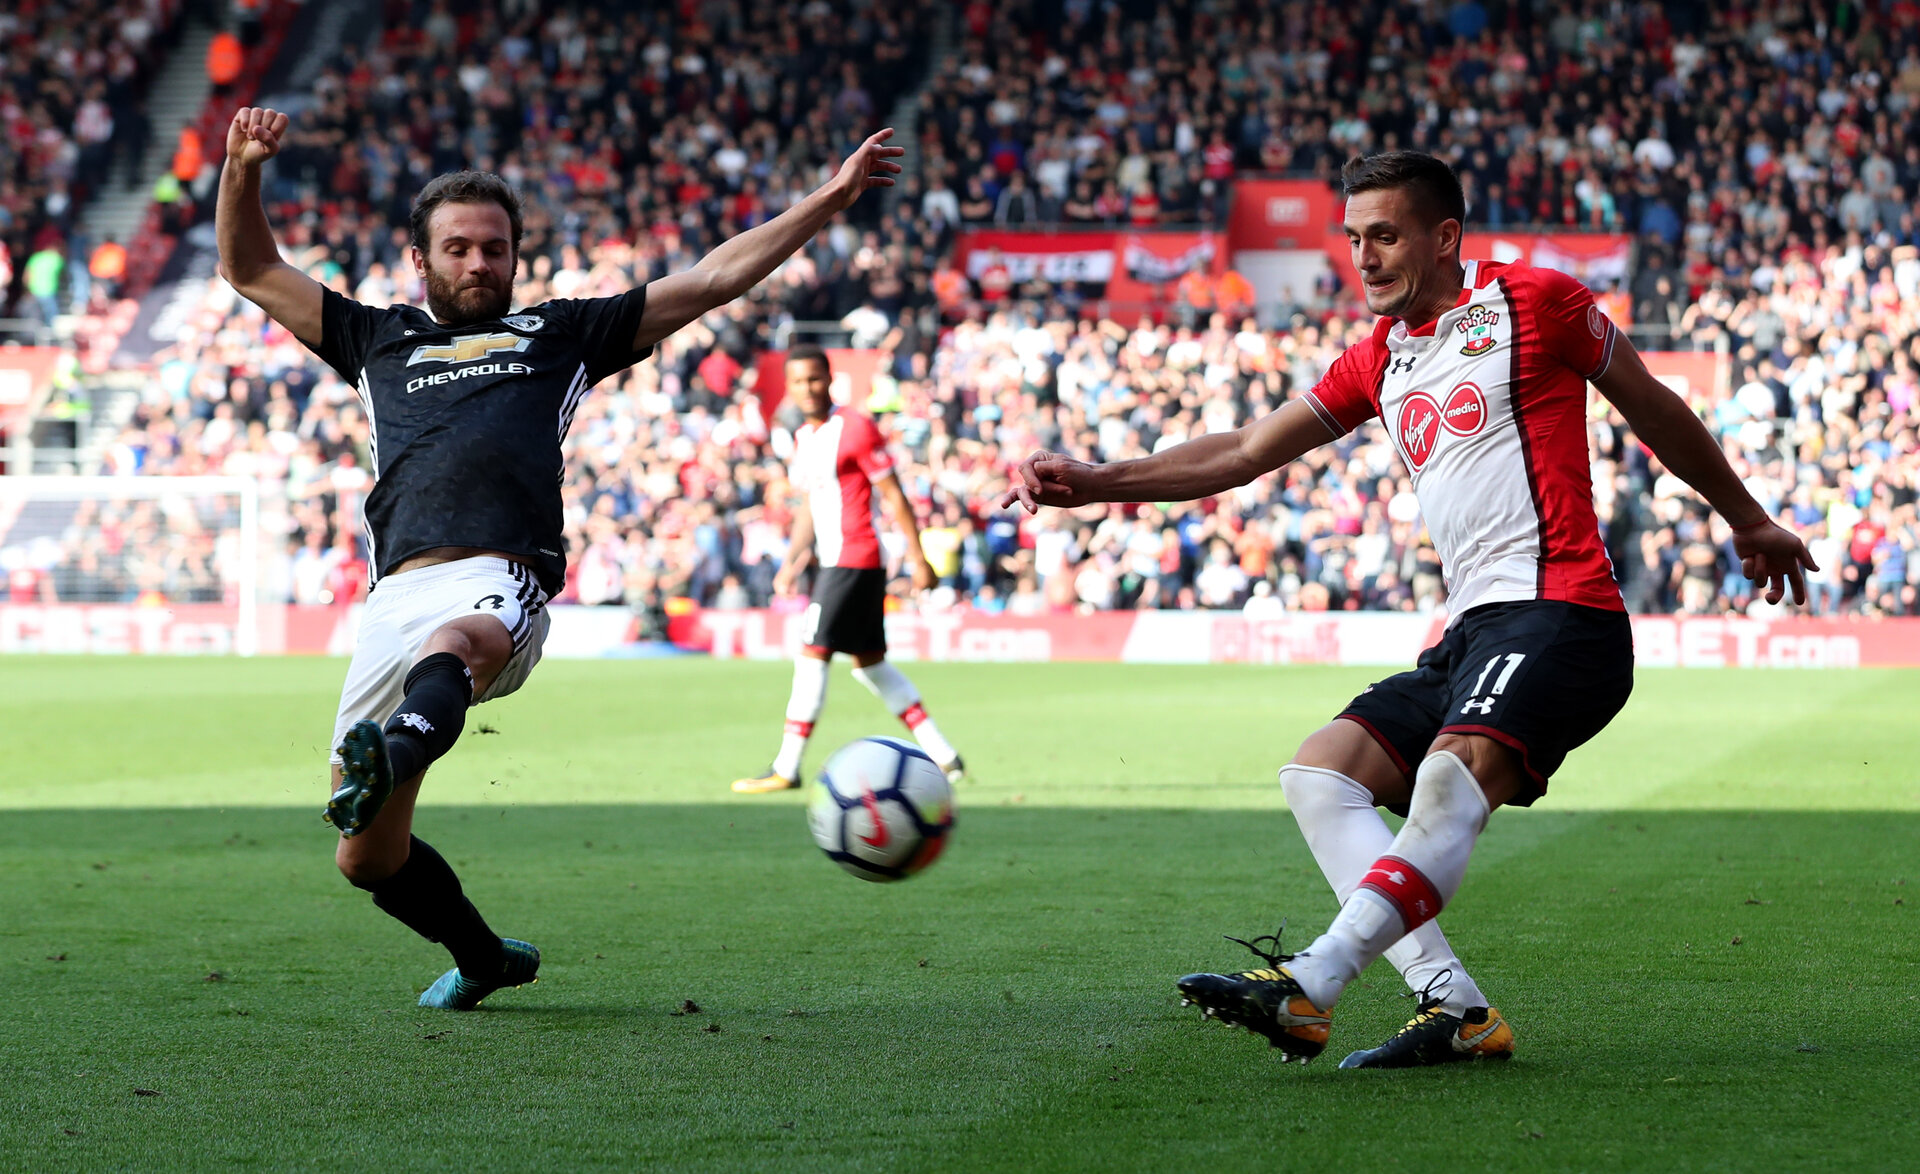 SOUTHAMPTON, ENGLAND - SEPTEMBER 23: Dusan Tadic of Southampton crosses while under pressure from Juan Mata of Manchester United during the Premier League match between Southampton and Manchester United at St Mary's Stadium on September 23, 2017 in Southampton, England. (Photo by Matt Watson/Southampton FC via Getty Images)